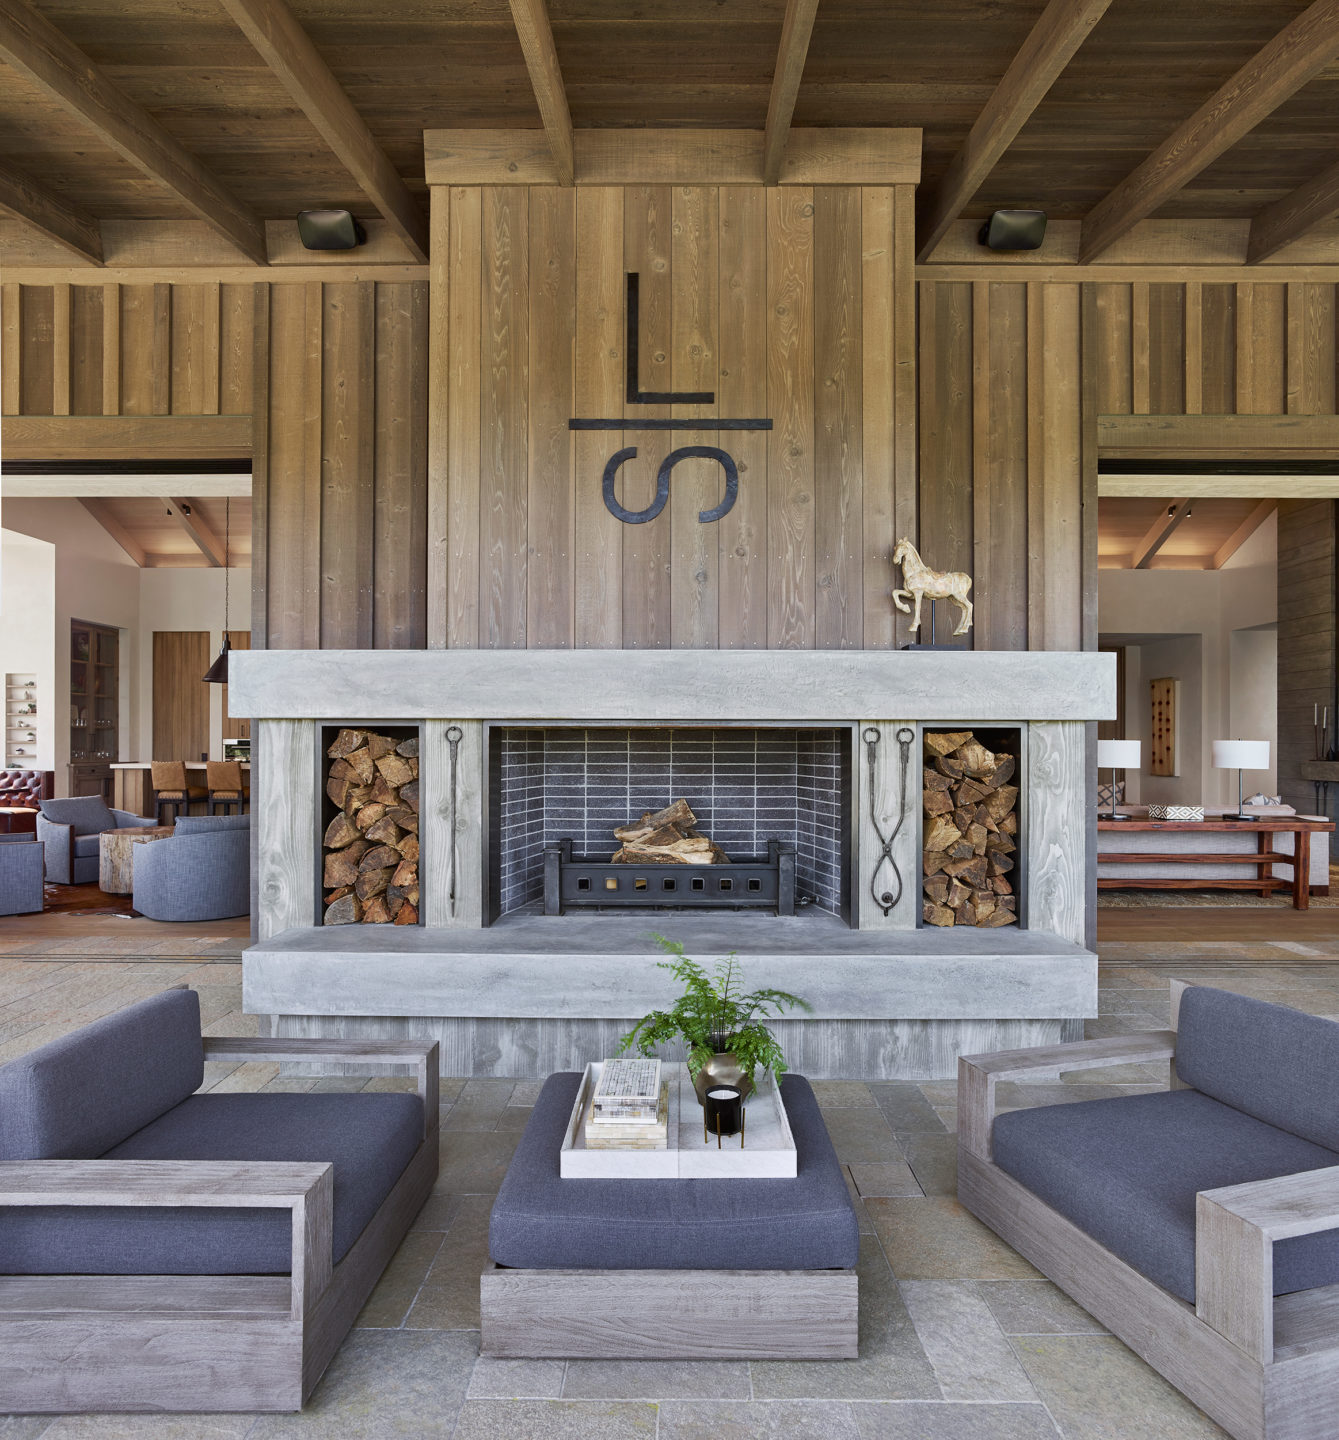 Jennifer_robins_interiors_projects_napa_valley_6_exterior_ext_fireplace